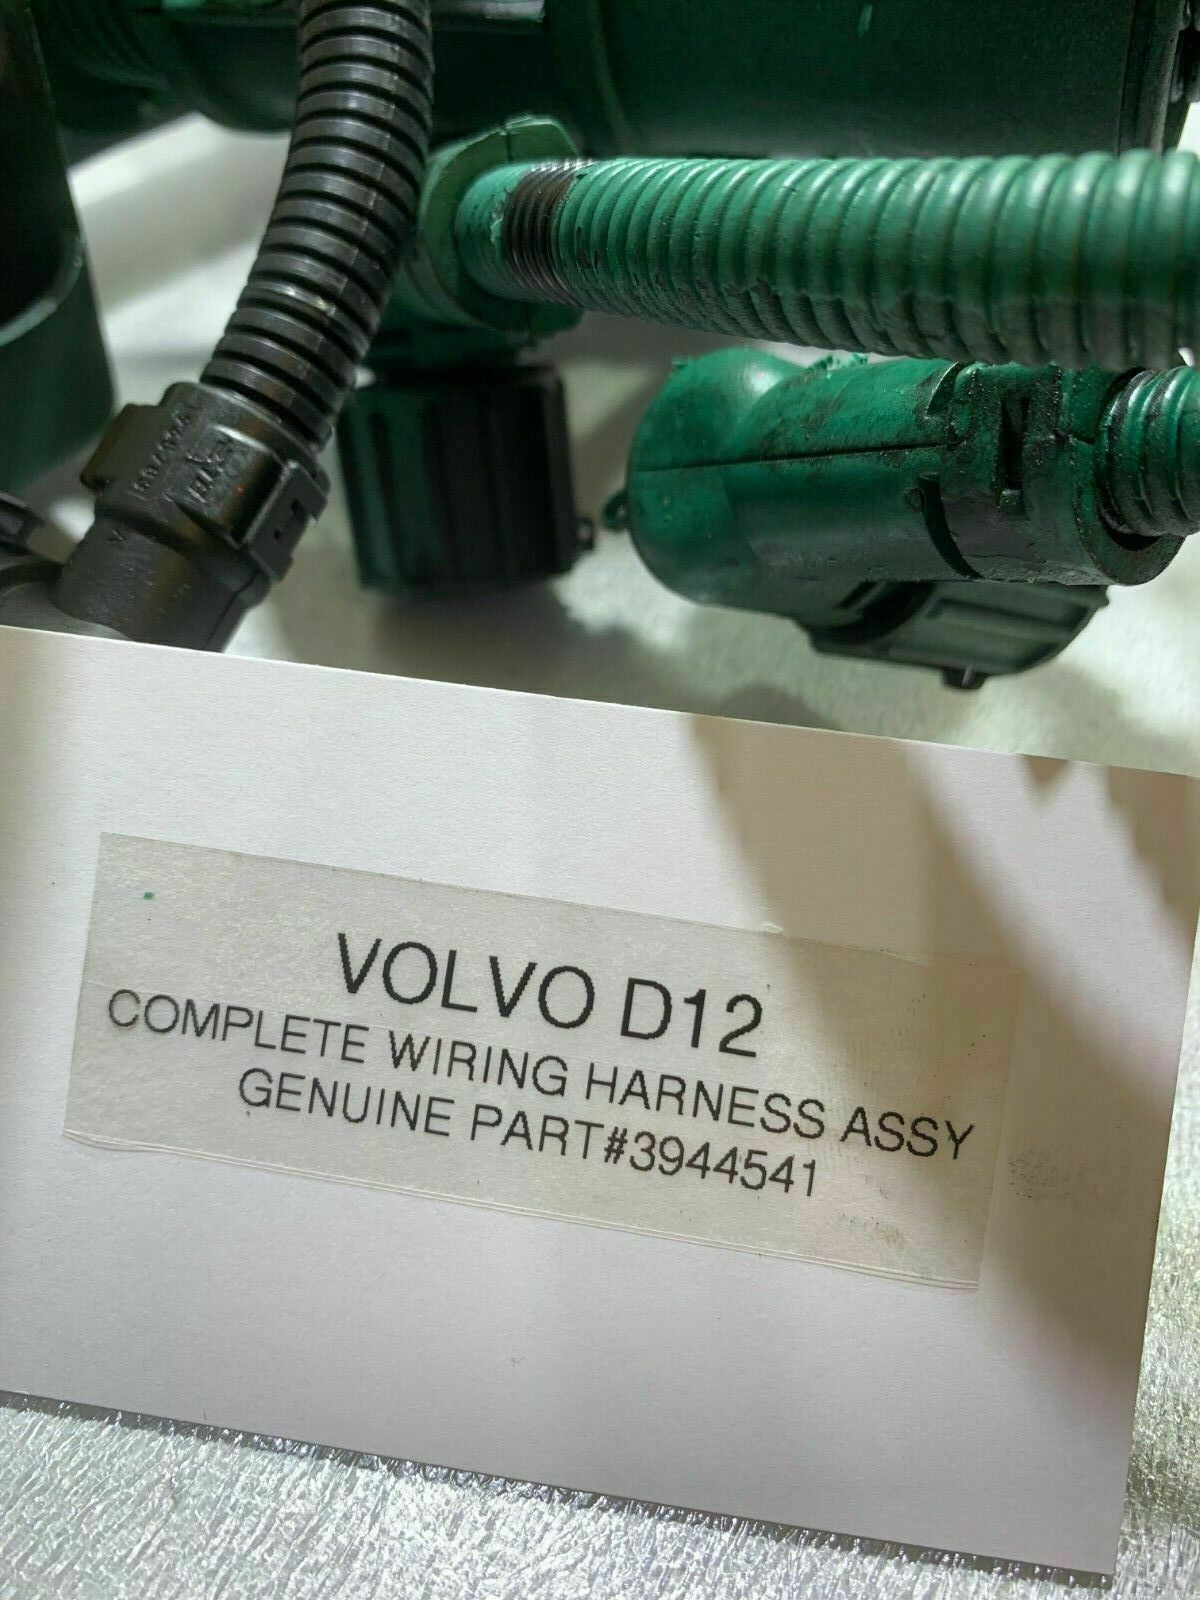 VOLVO D12 COMPLETE WIRING HARNESS 3944541 FREE SHIPPING  READY TO SHIP image 4